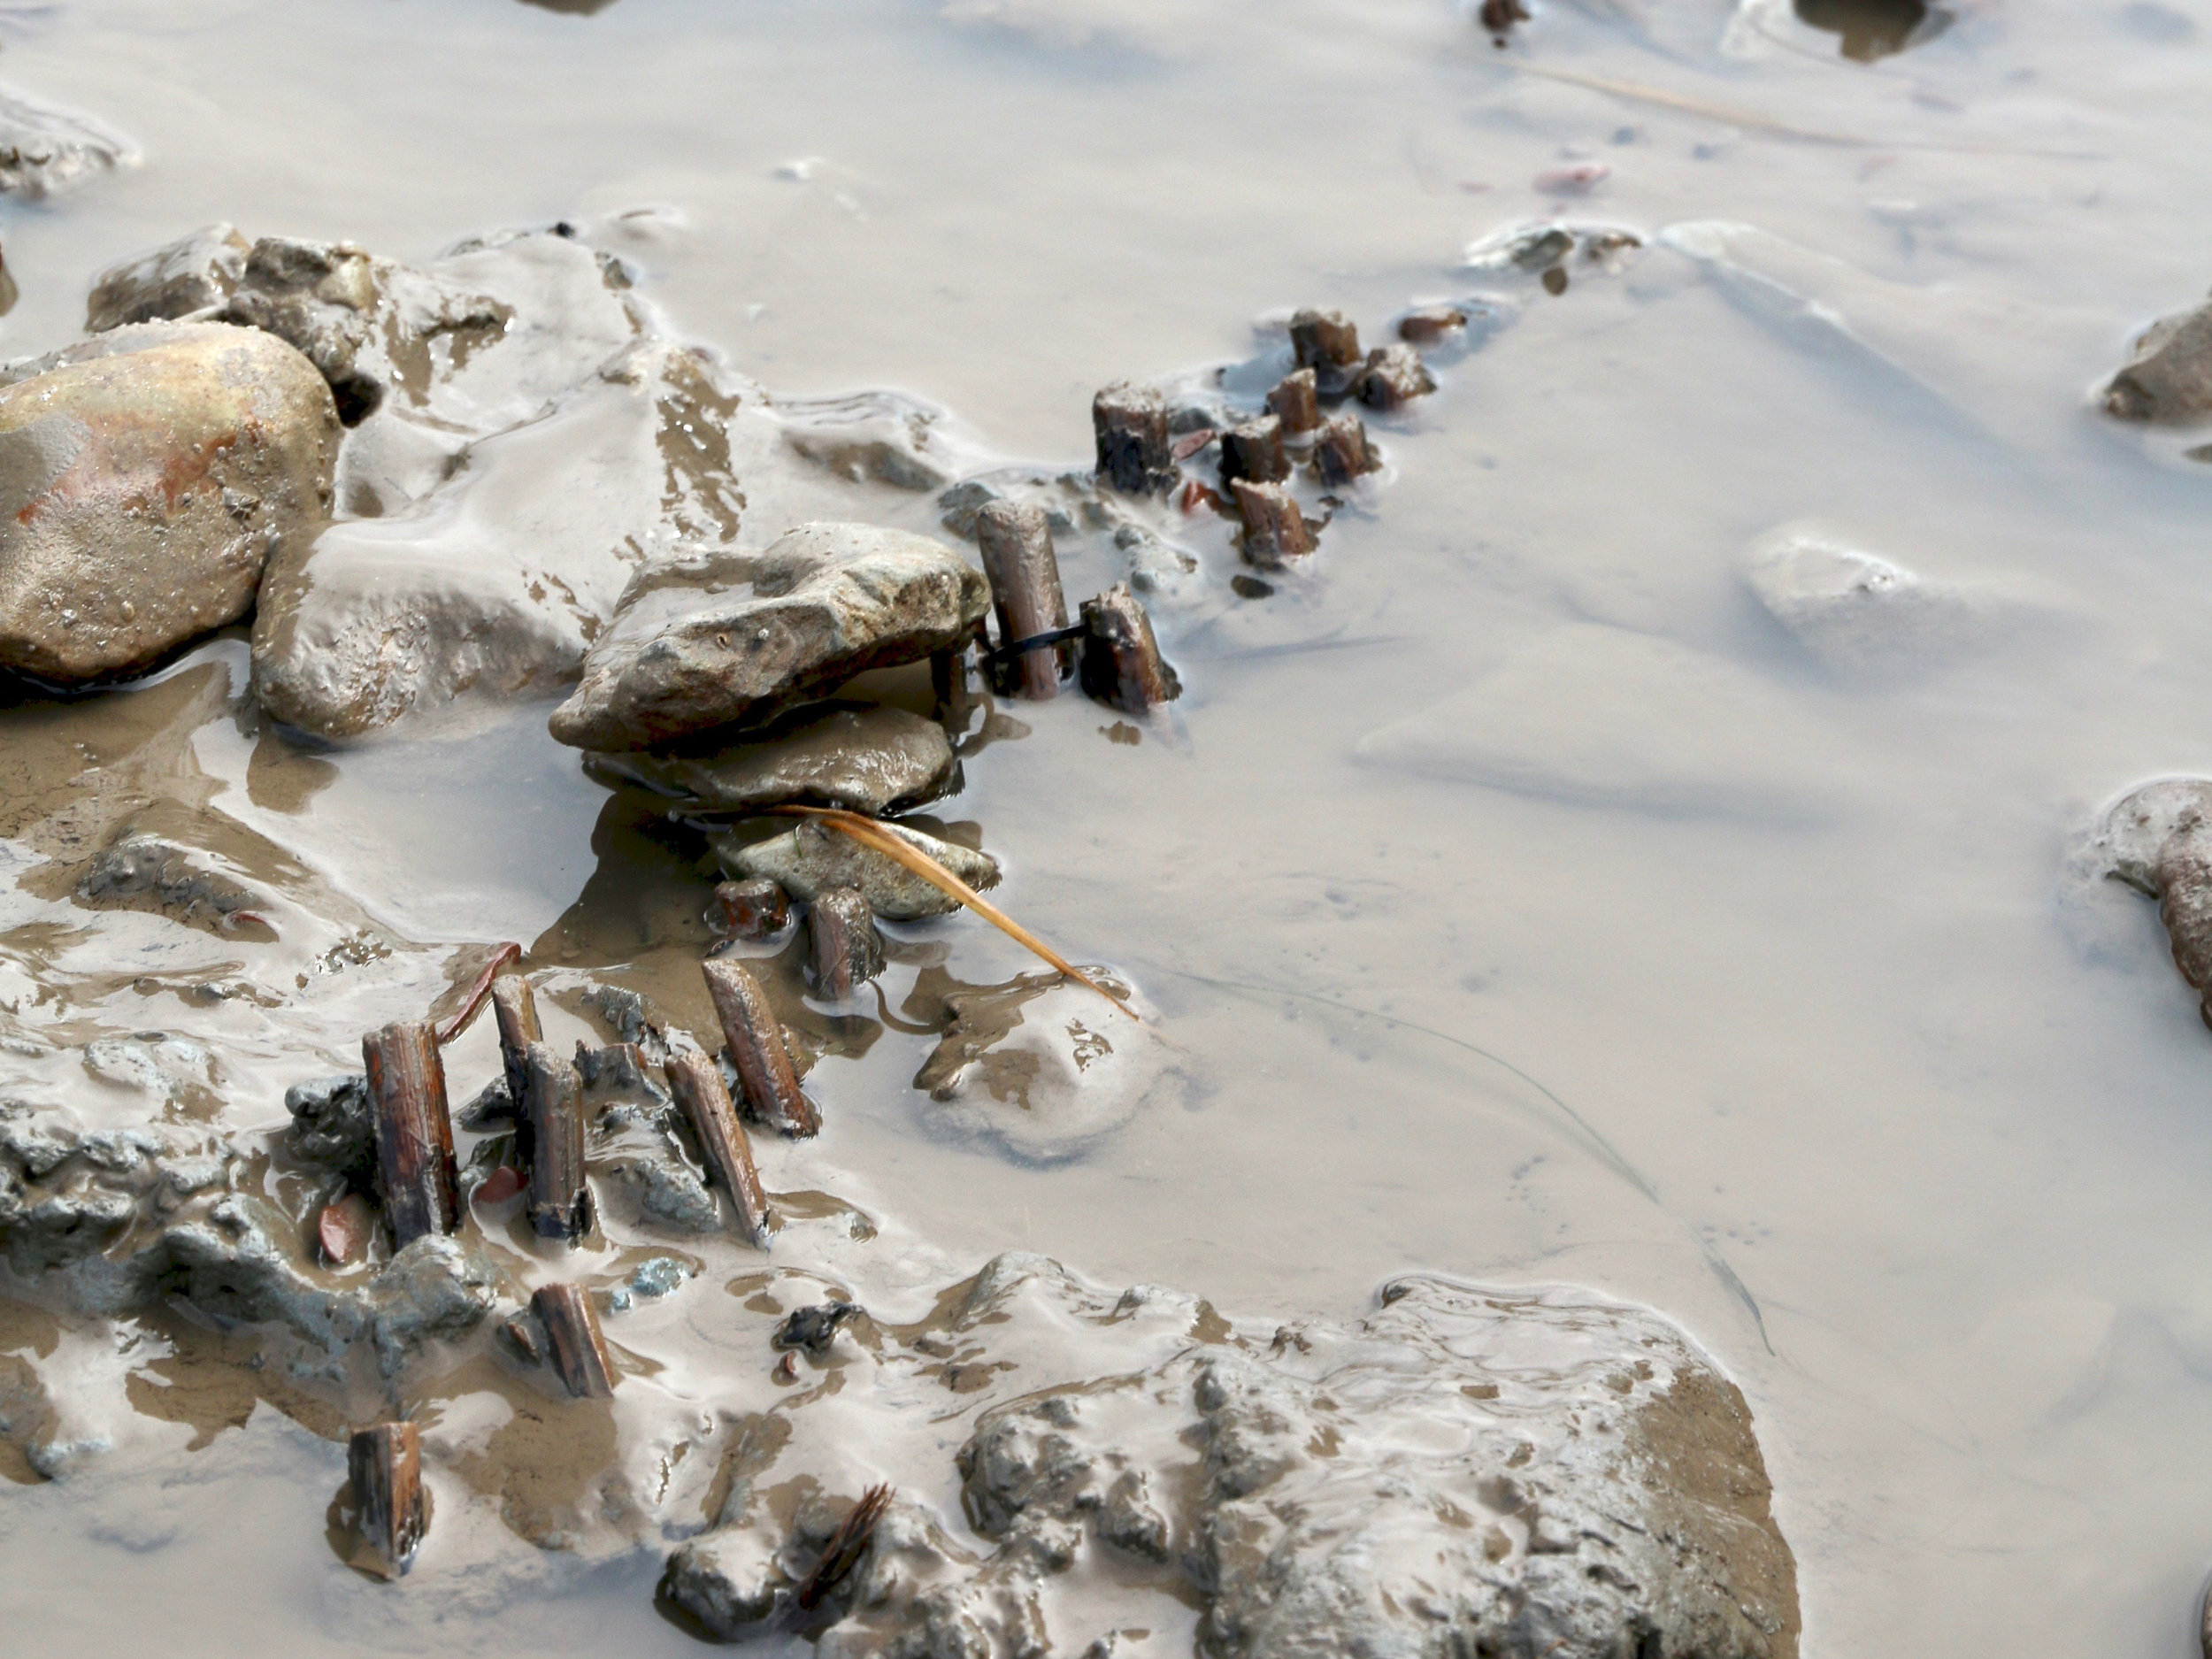 Remains of mesolithic fish trap, Goldcliff